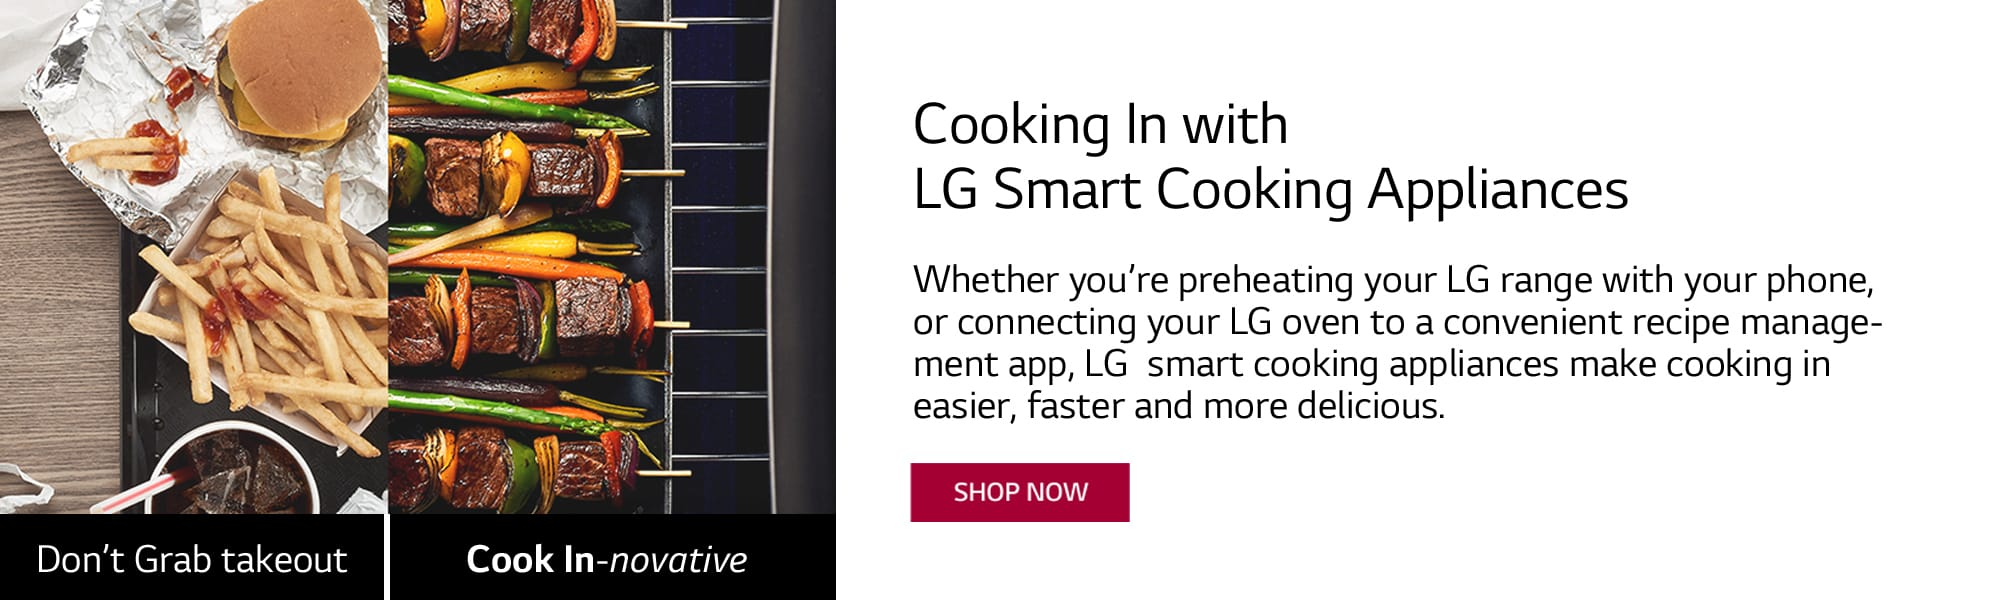 LG Smart Cooking